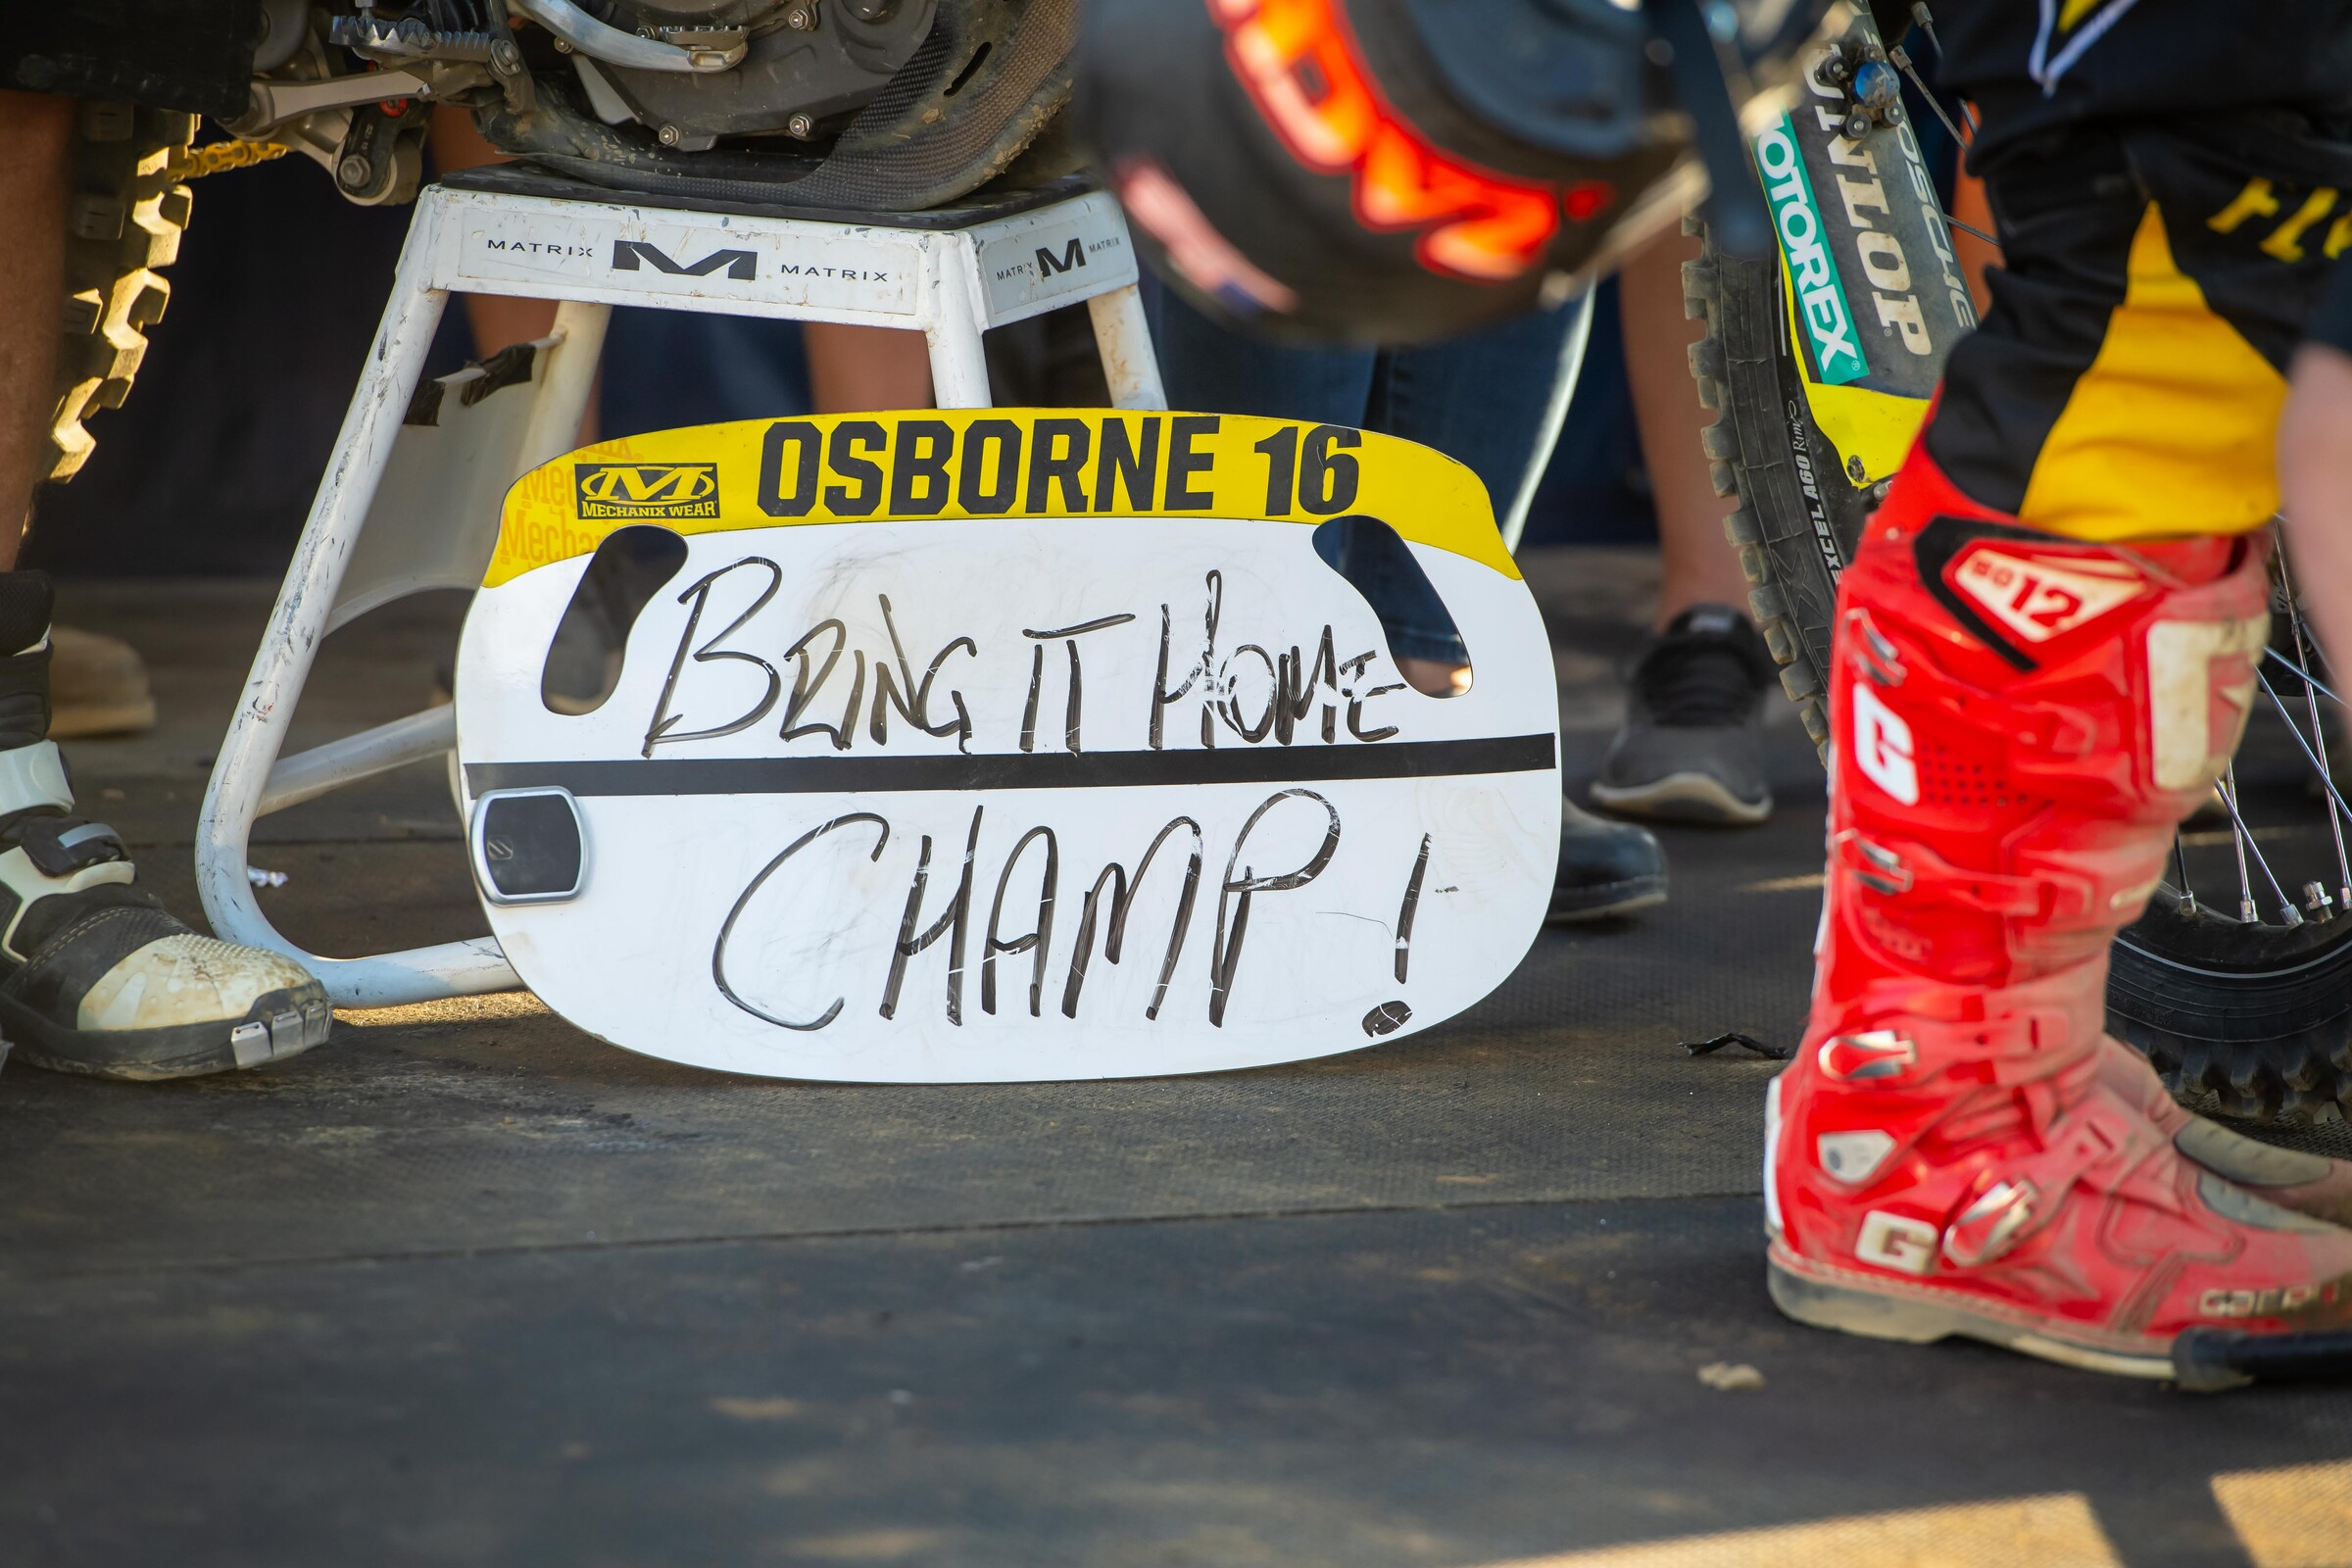 The final message Feeney gave Osborne during the 2020 Lucas Oil AMA Pro Motocross Championship.